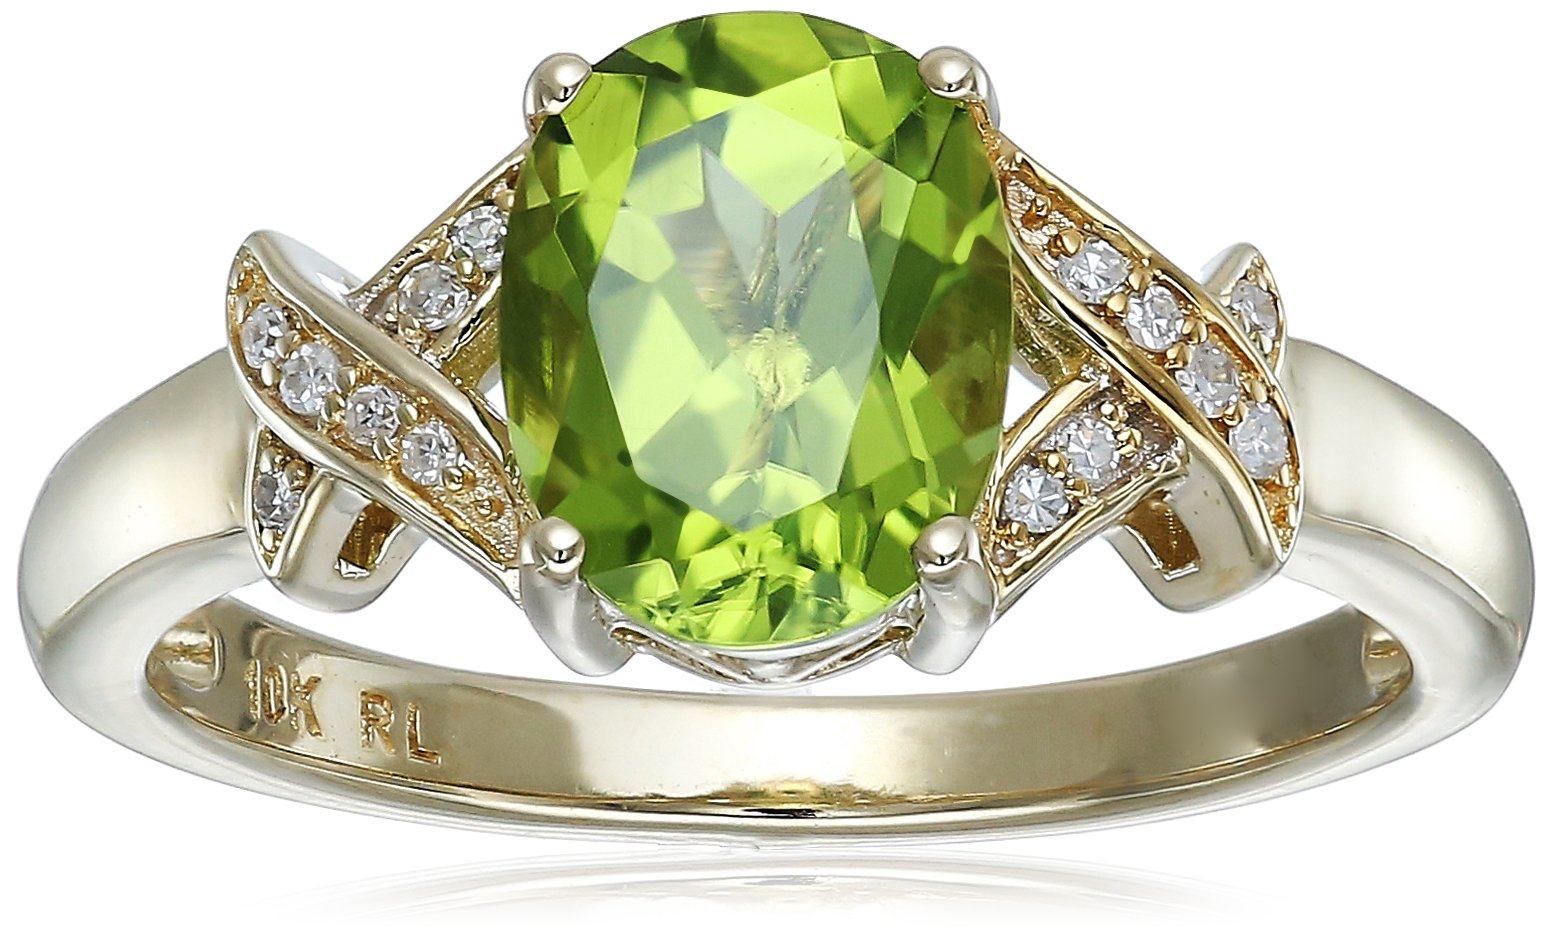 10k Yellow Gold Oval Peridot with Diamond Accent Ring, Size 7